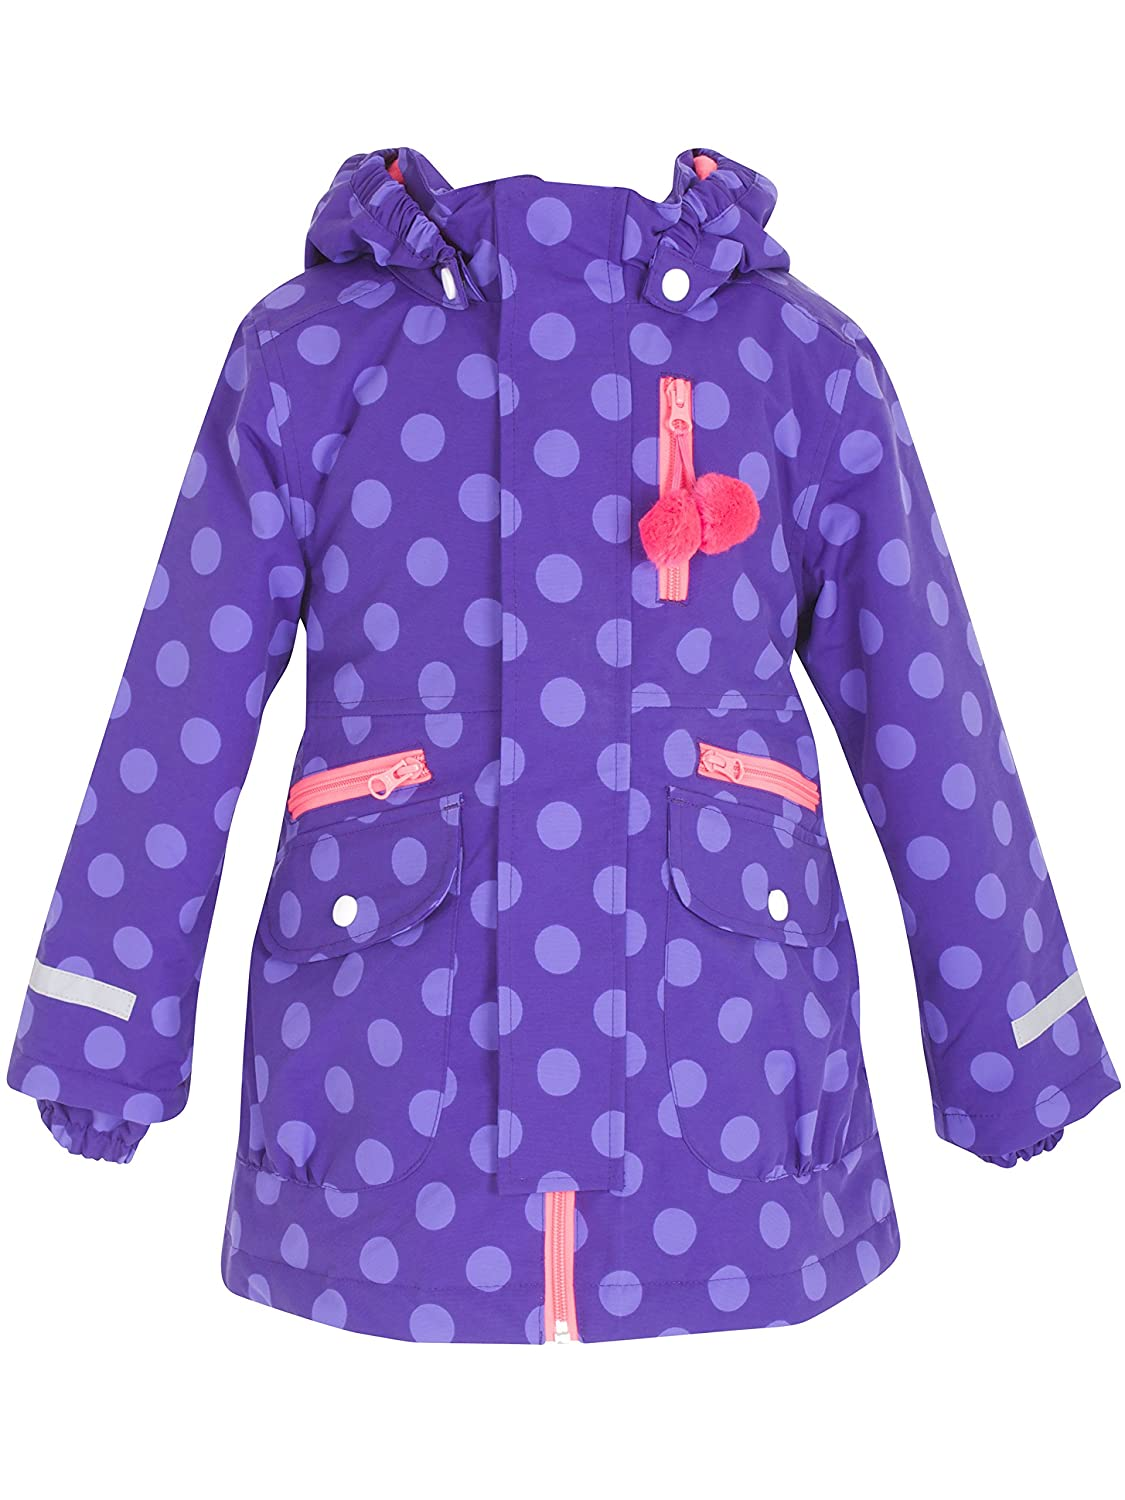 Danefae Girl Outdoor Wintermantel Kristine Mellow Purple/Crys Violet Dots günstig kaufen